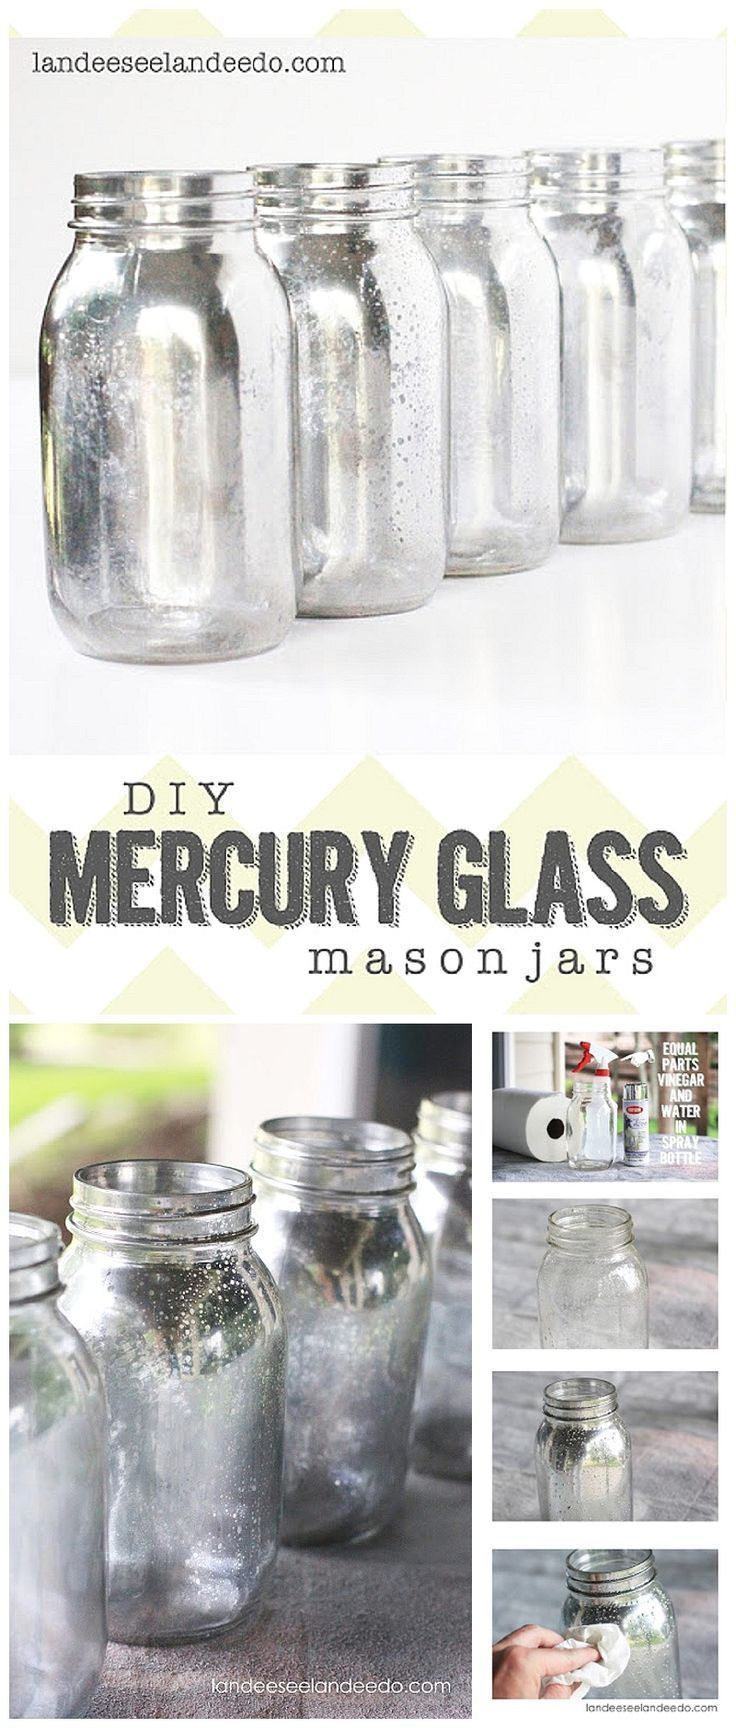 DIY Mercury Glass Mason Jars Tutorial - These can be used for SO many fun occasi...